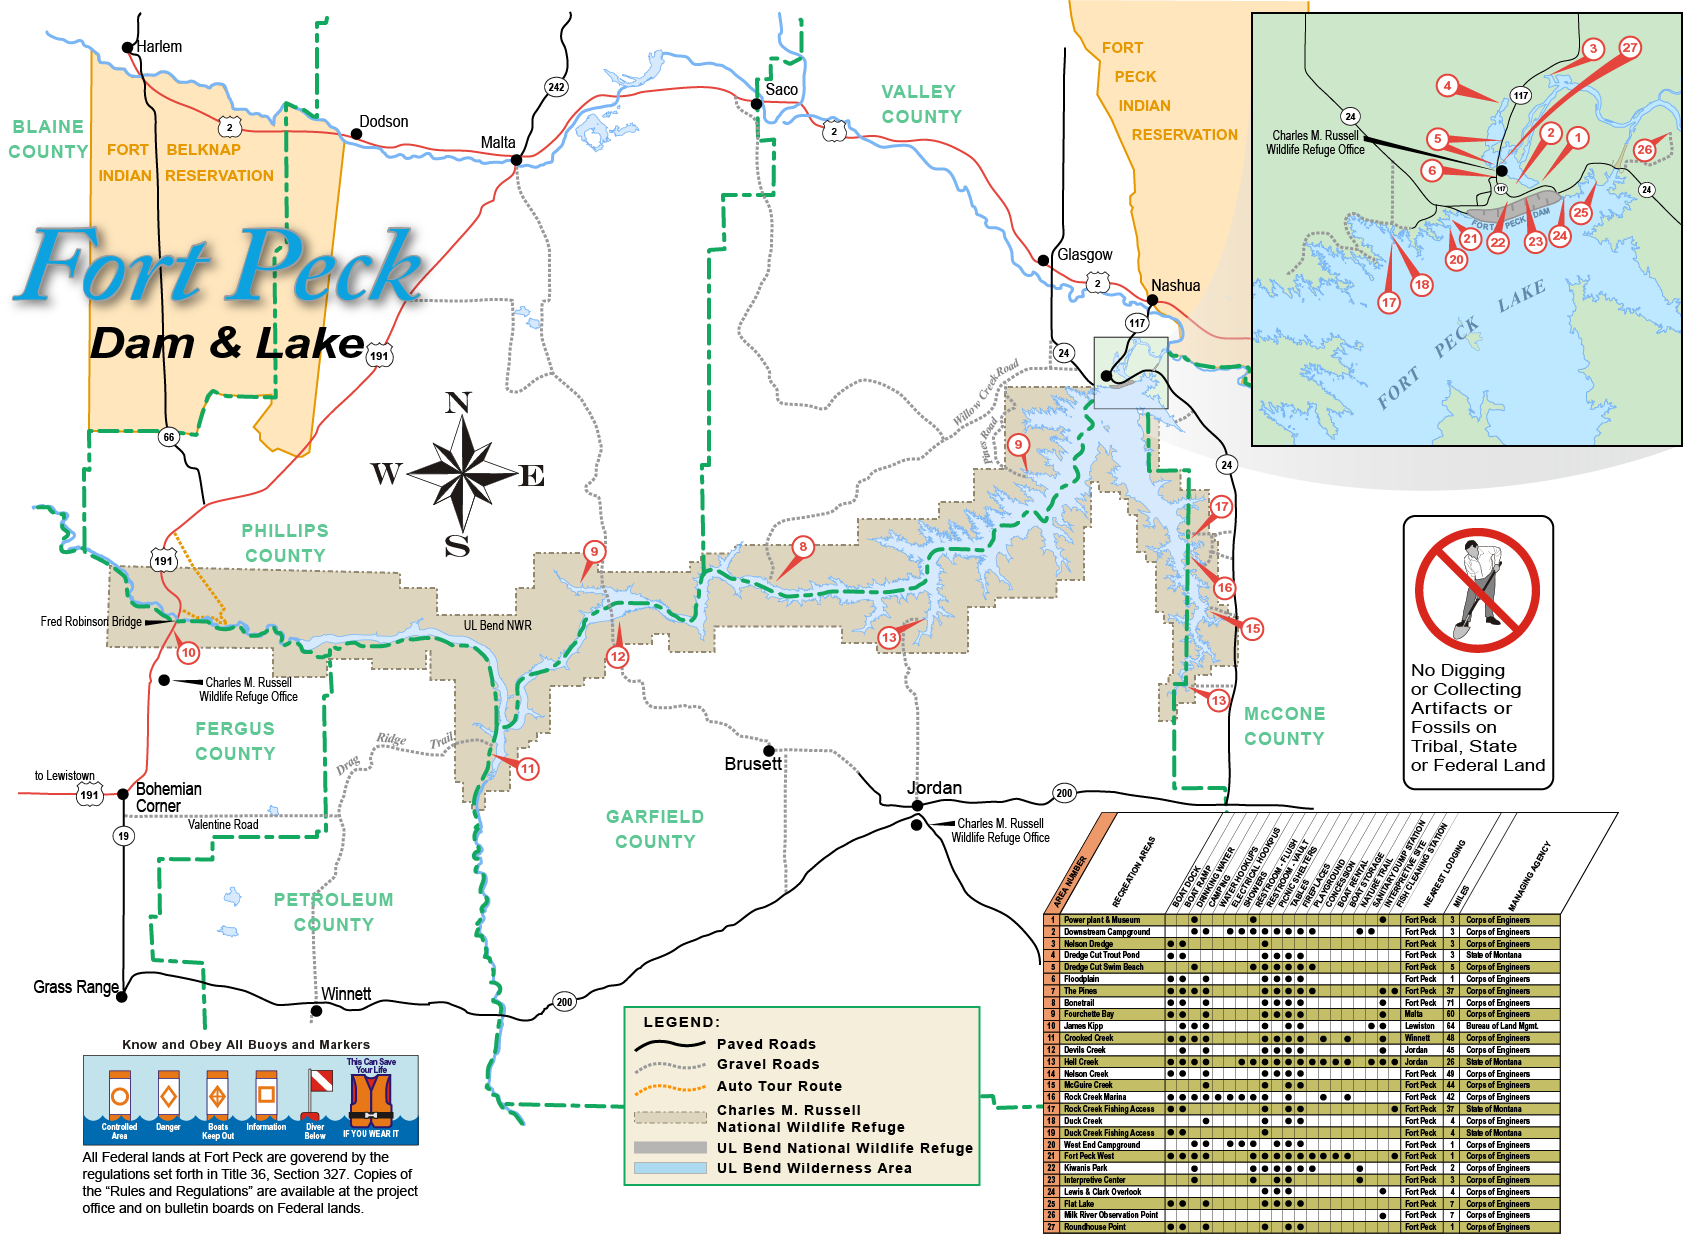 fort peck lake map Fort Peck Recreation Brochure Map Missouri River Fort Peck Dam fort peck lake map